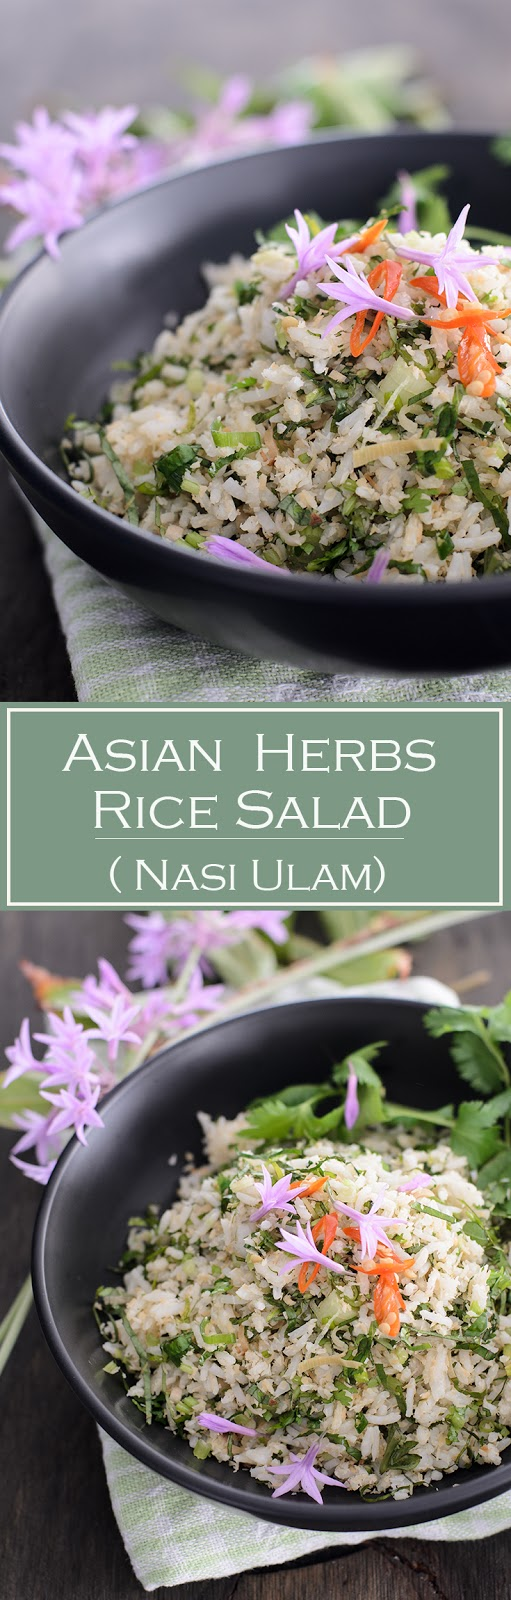 Asian Herbs Rice Salad is one of Malaysian favourite rice dish.  Nasi ulam is basically cooked rice mix with fresh herbs, green from the garden, along with the aromatic and flavourful toasted coconut.